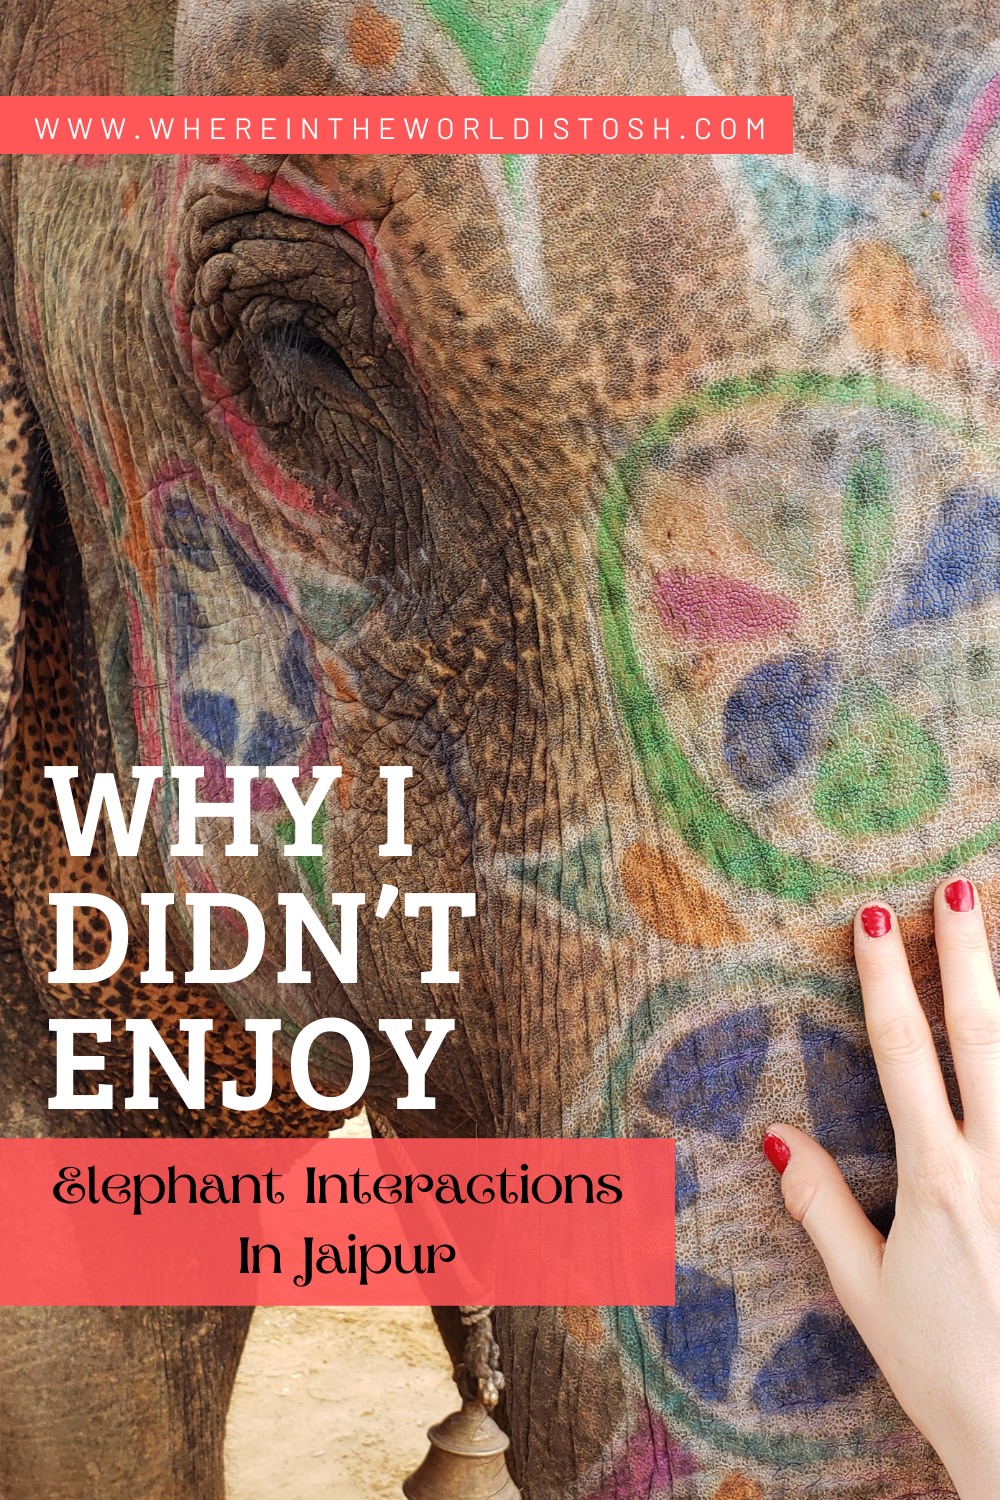 Why I Didnt Like Elephant Interactions In Jaipur